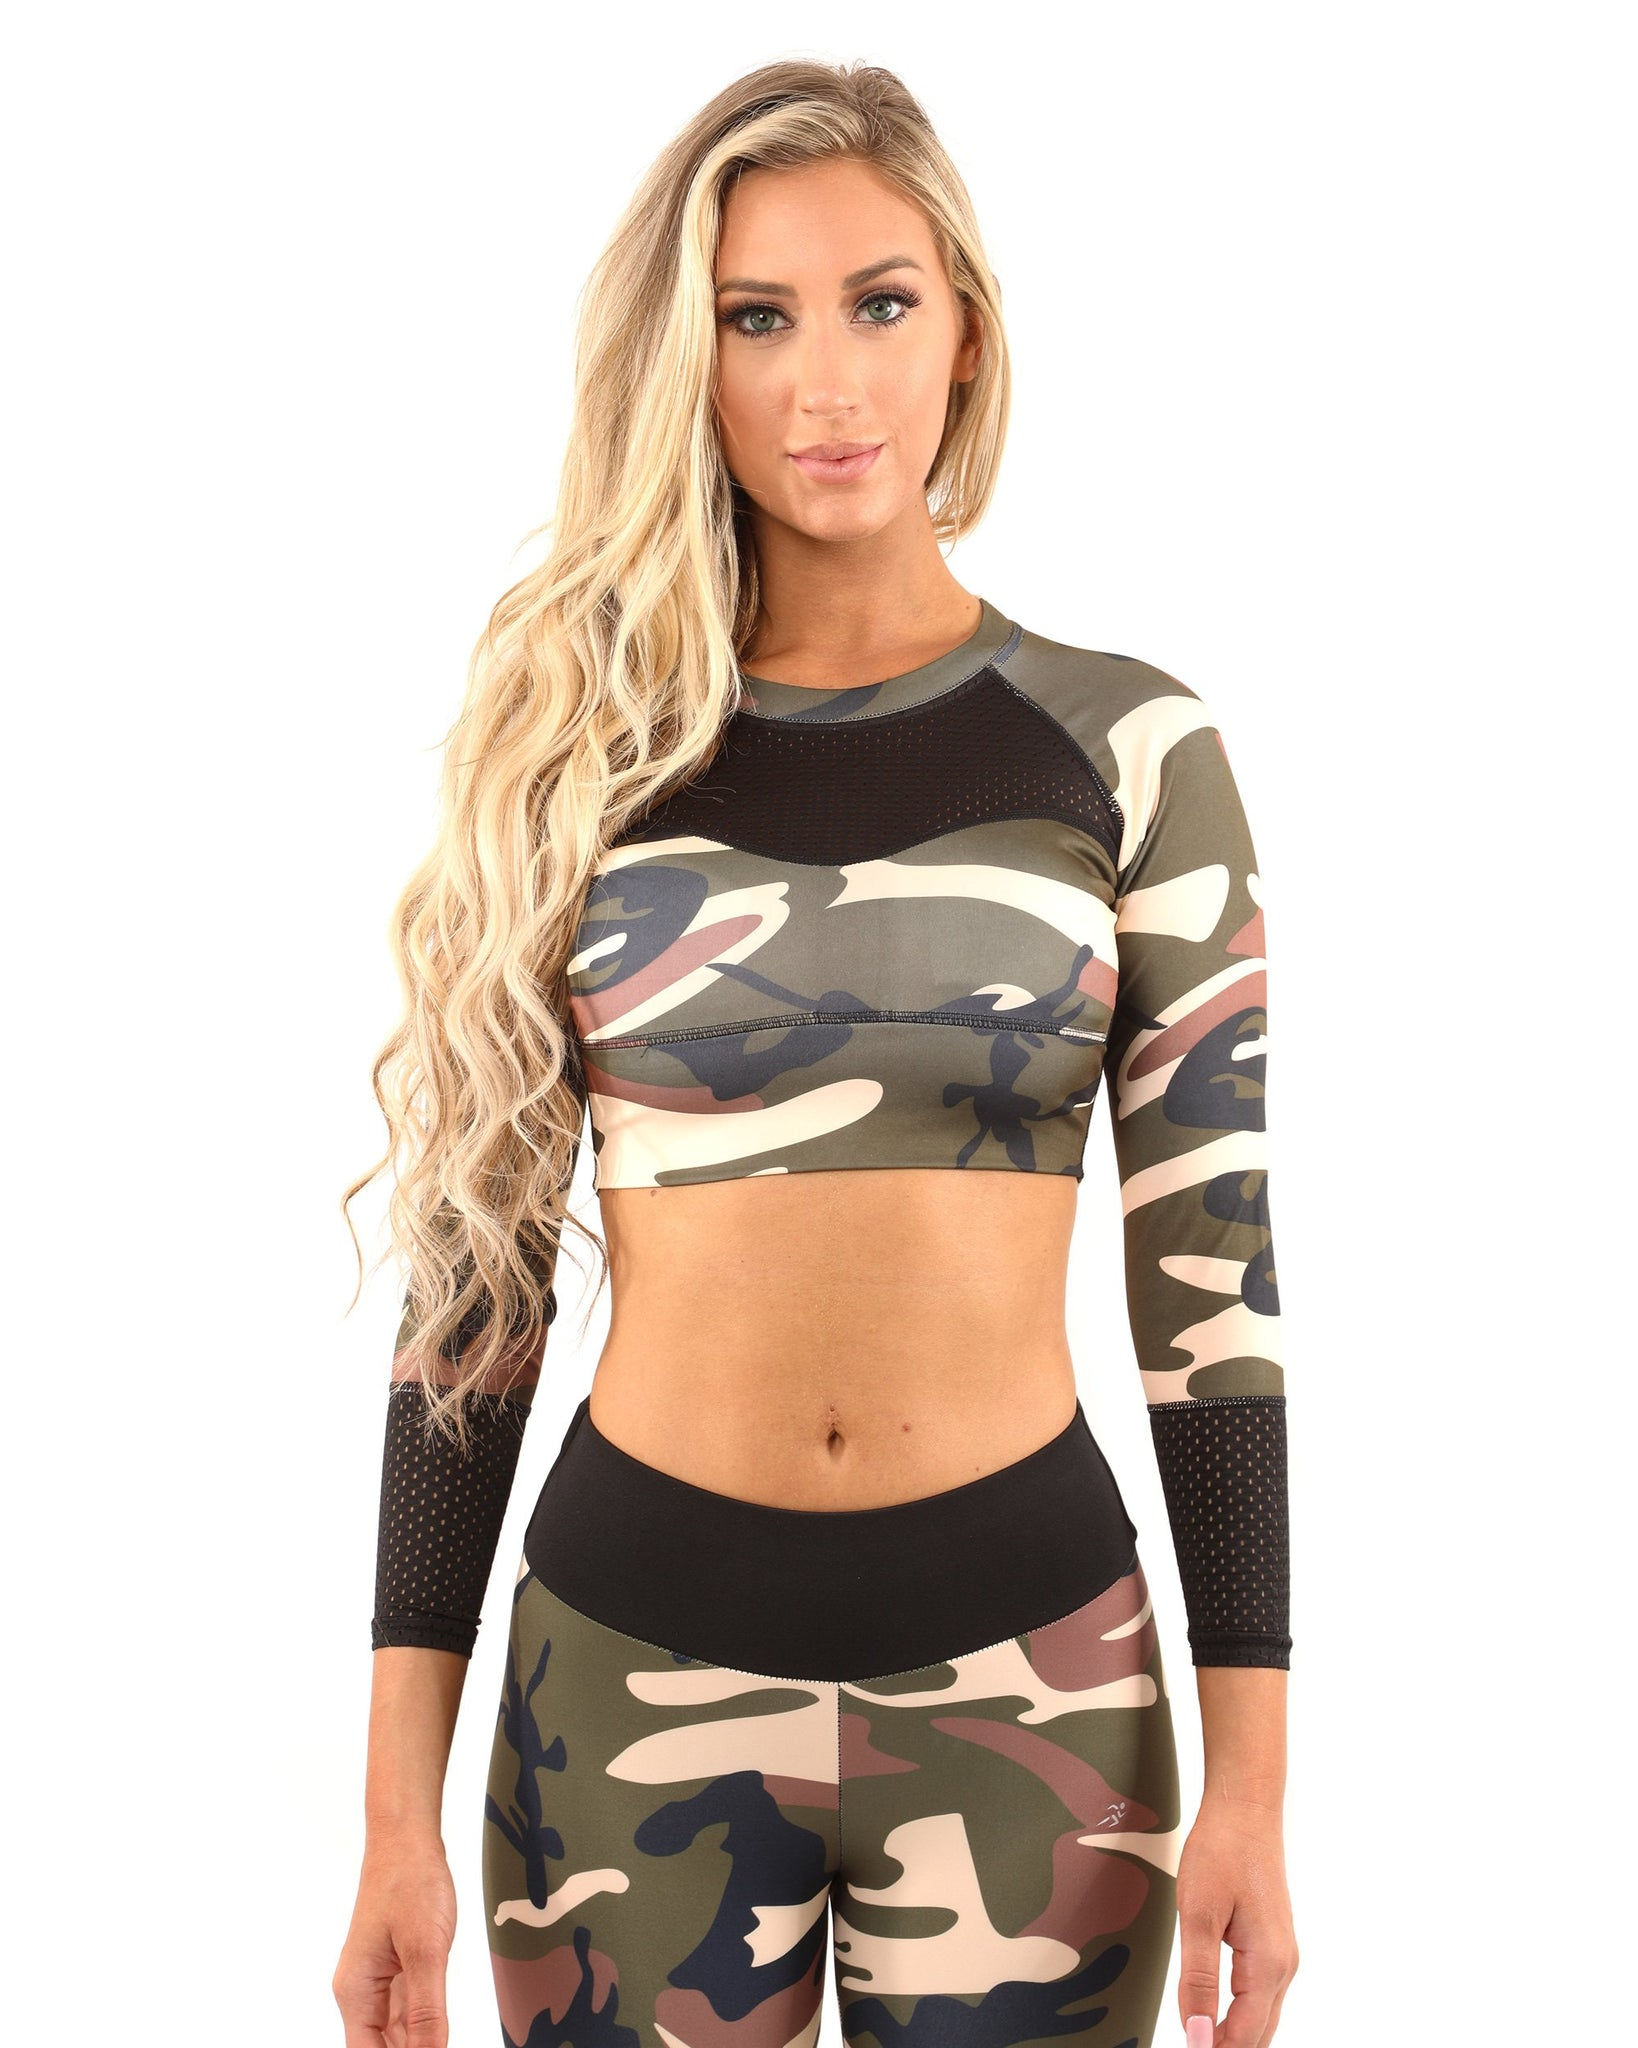 RSP Fashion - Virginia Camouflage Sports Top - Brown/Green